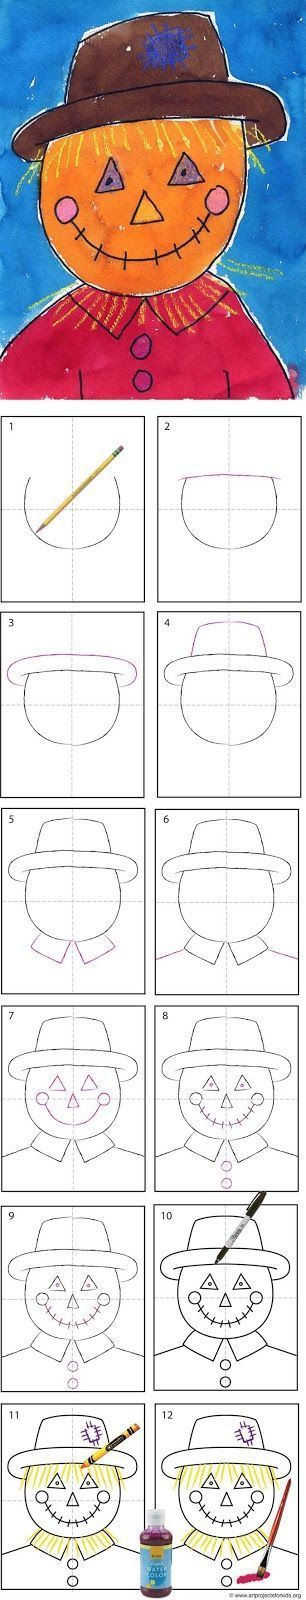 Art Projects for Kids: How to Draw a Scarecrow Tutorial